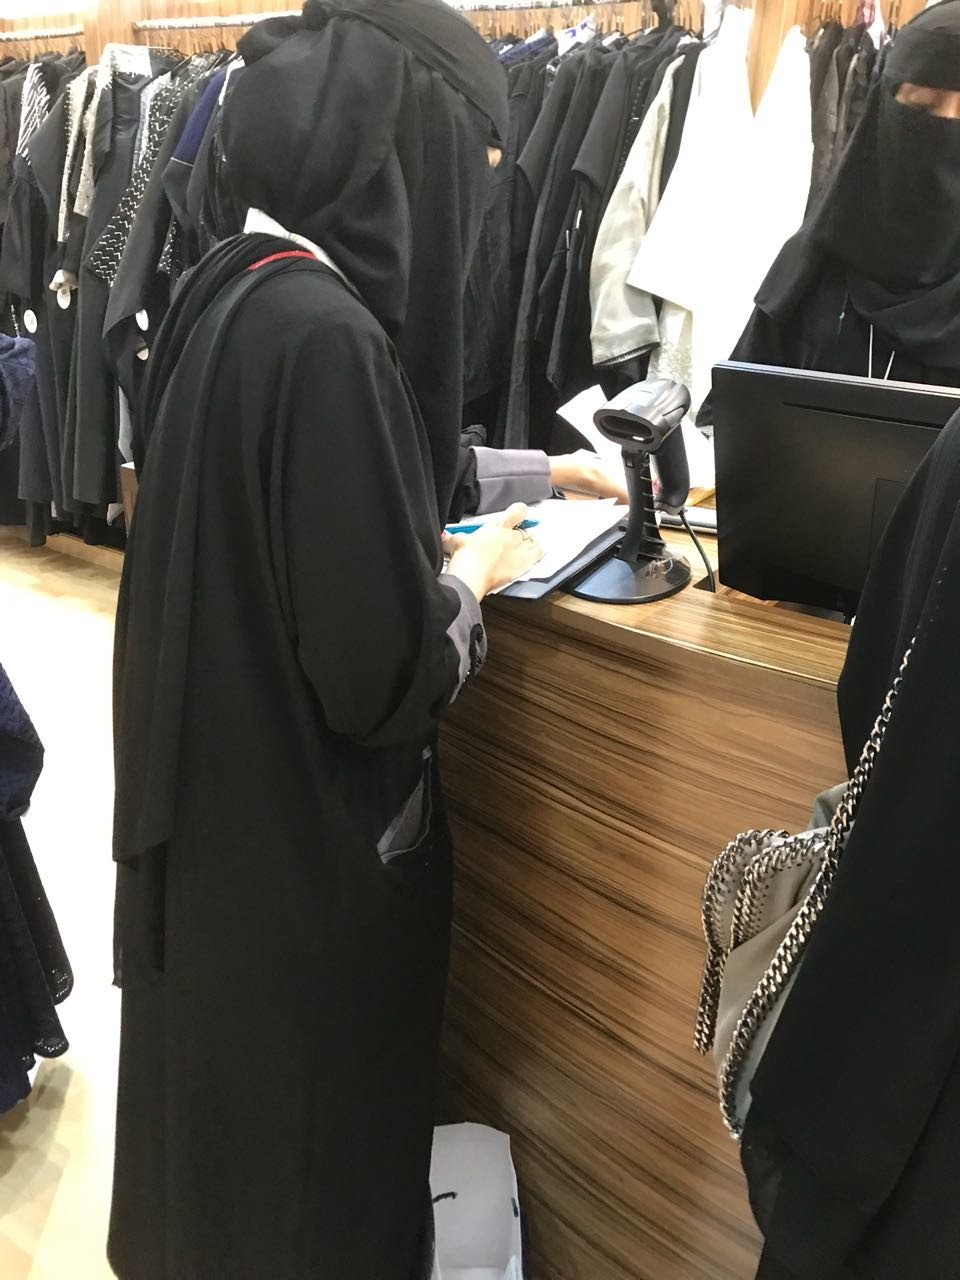 MLSD implements 111,000 inspection rounds on women-only shops, uncovering 87-percent compliance of entities